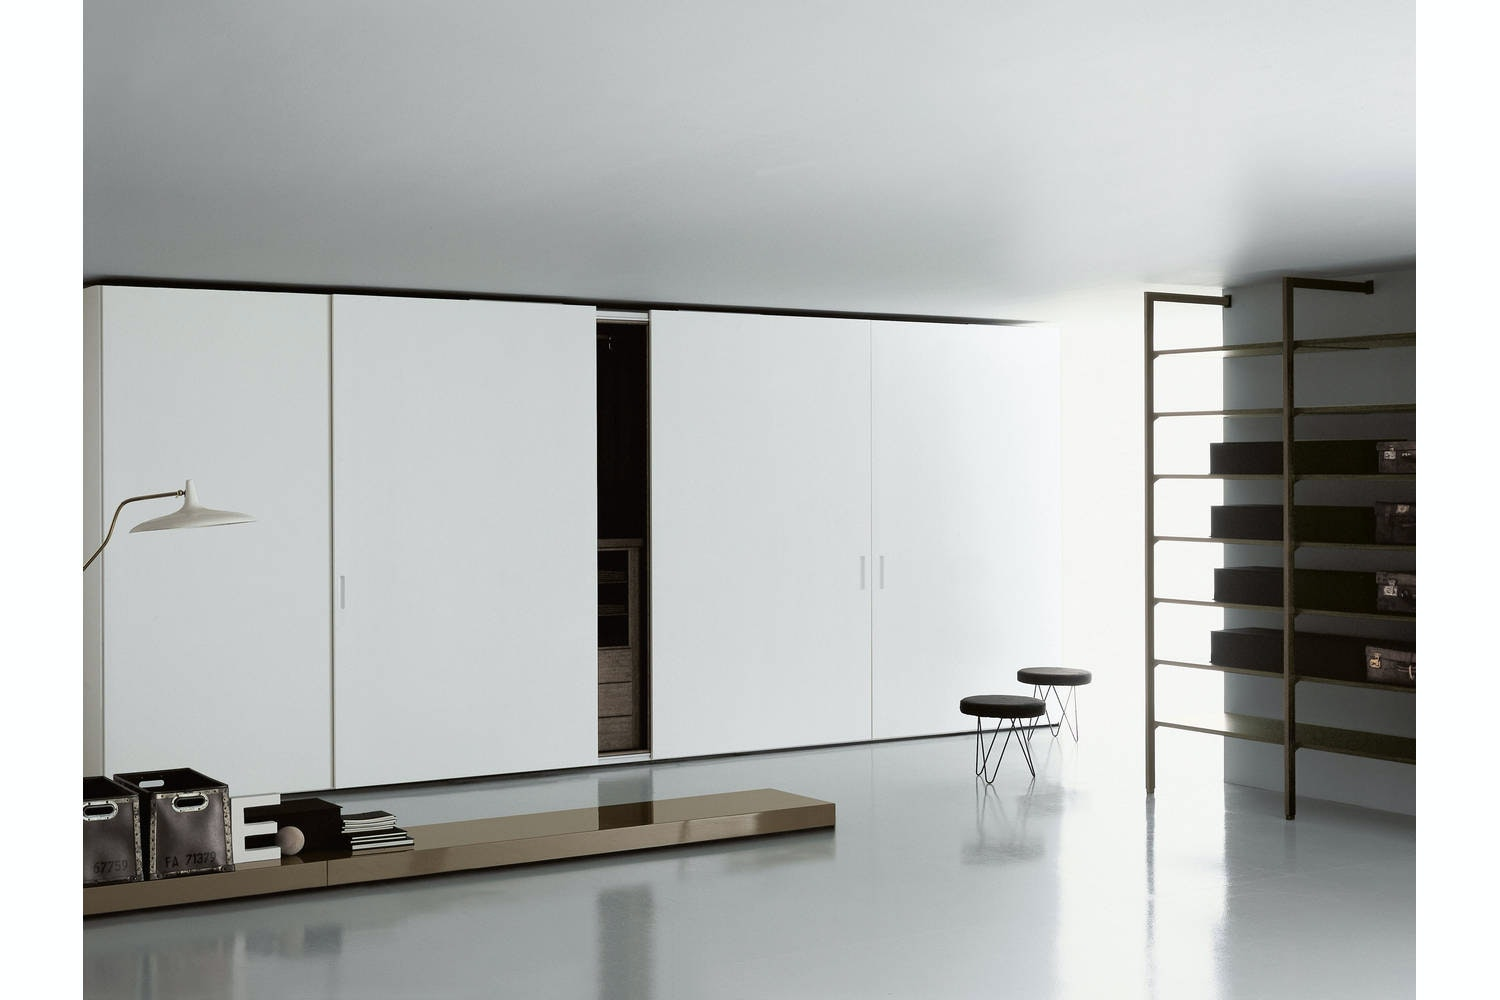 Storage Pull Out Sliding by Piero Lissoni for Porro